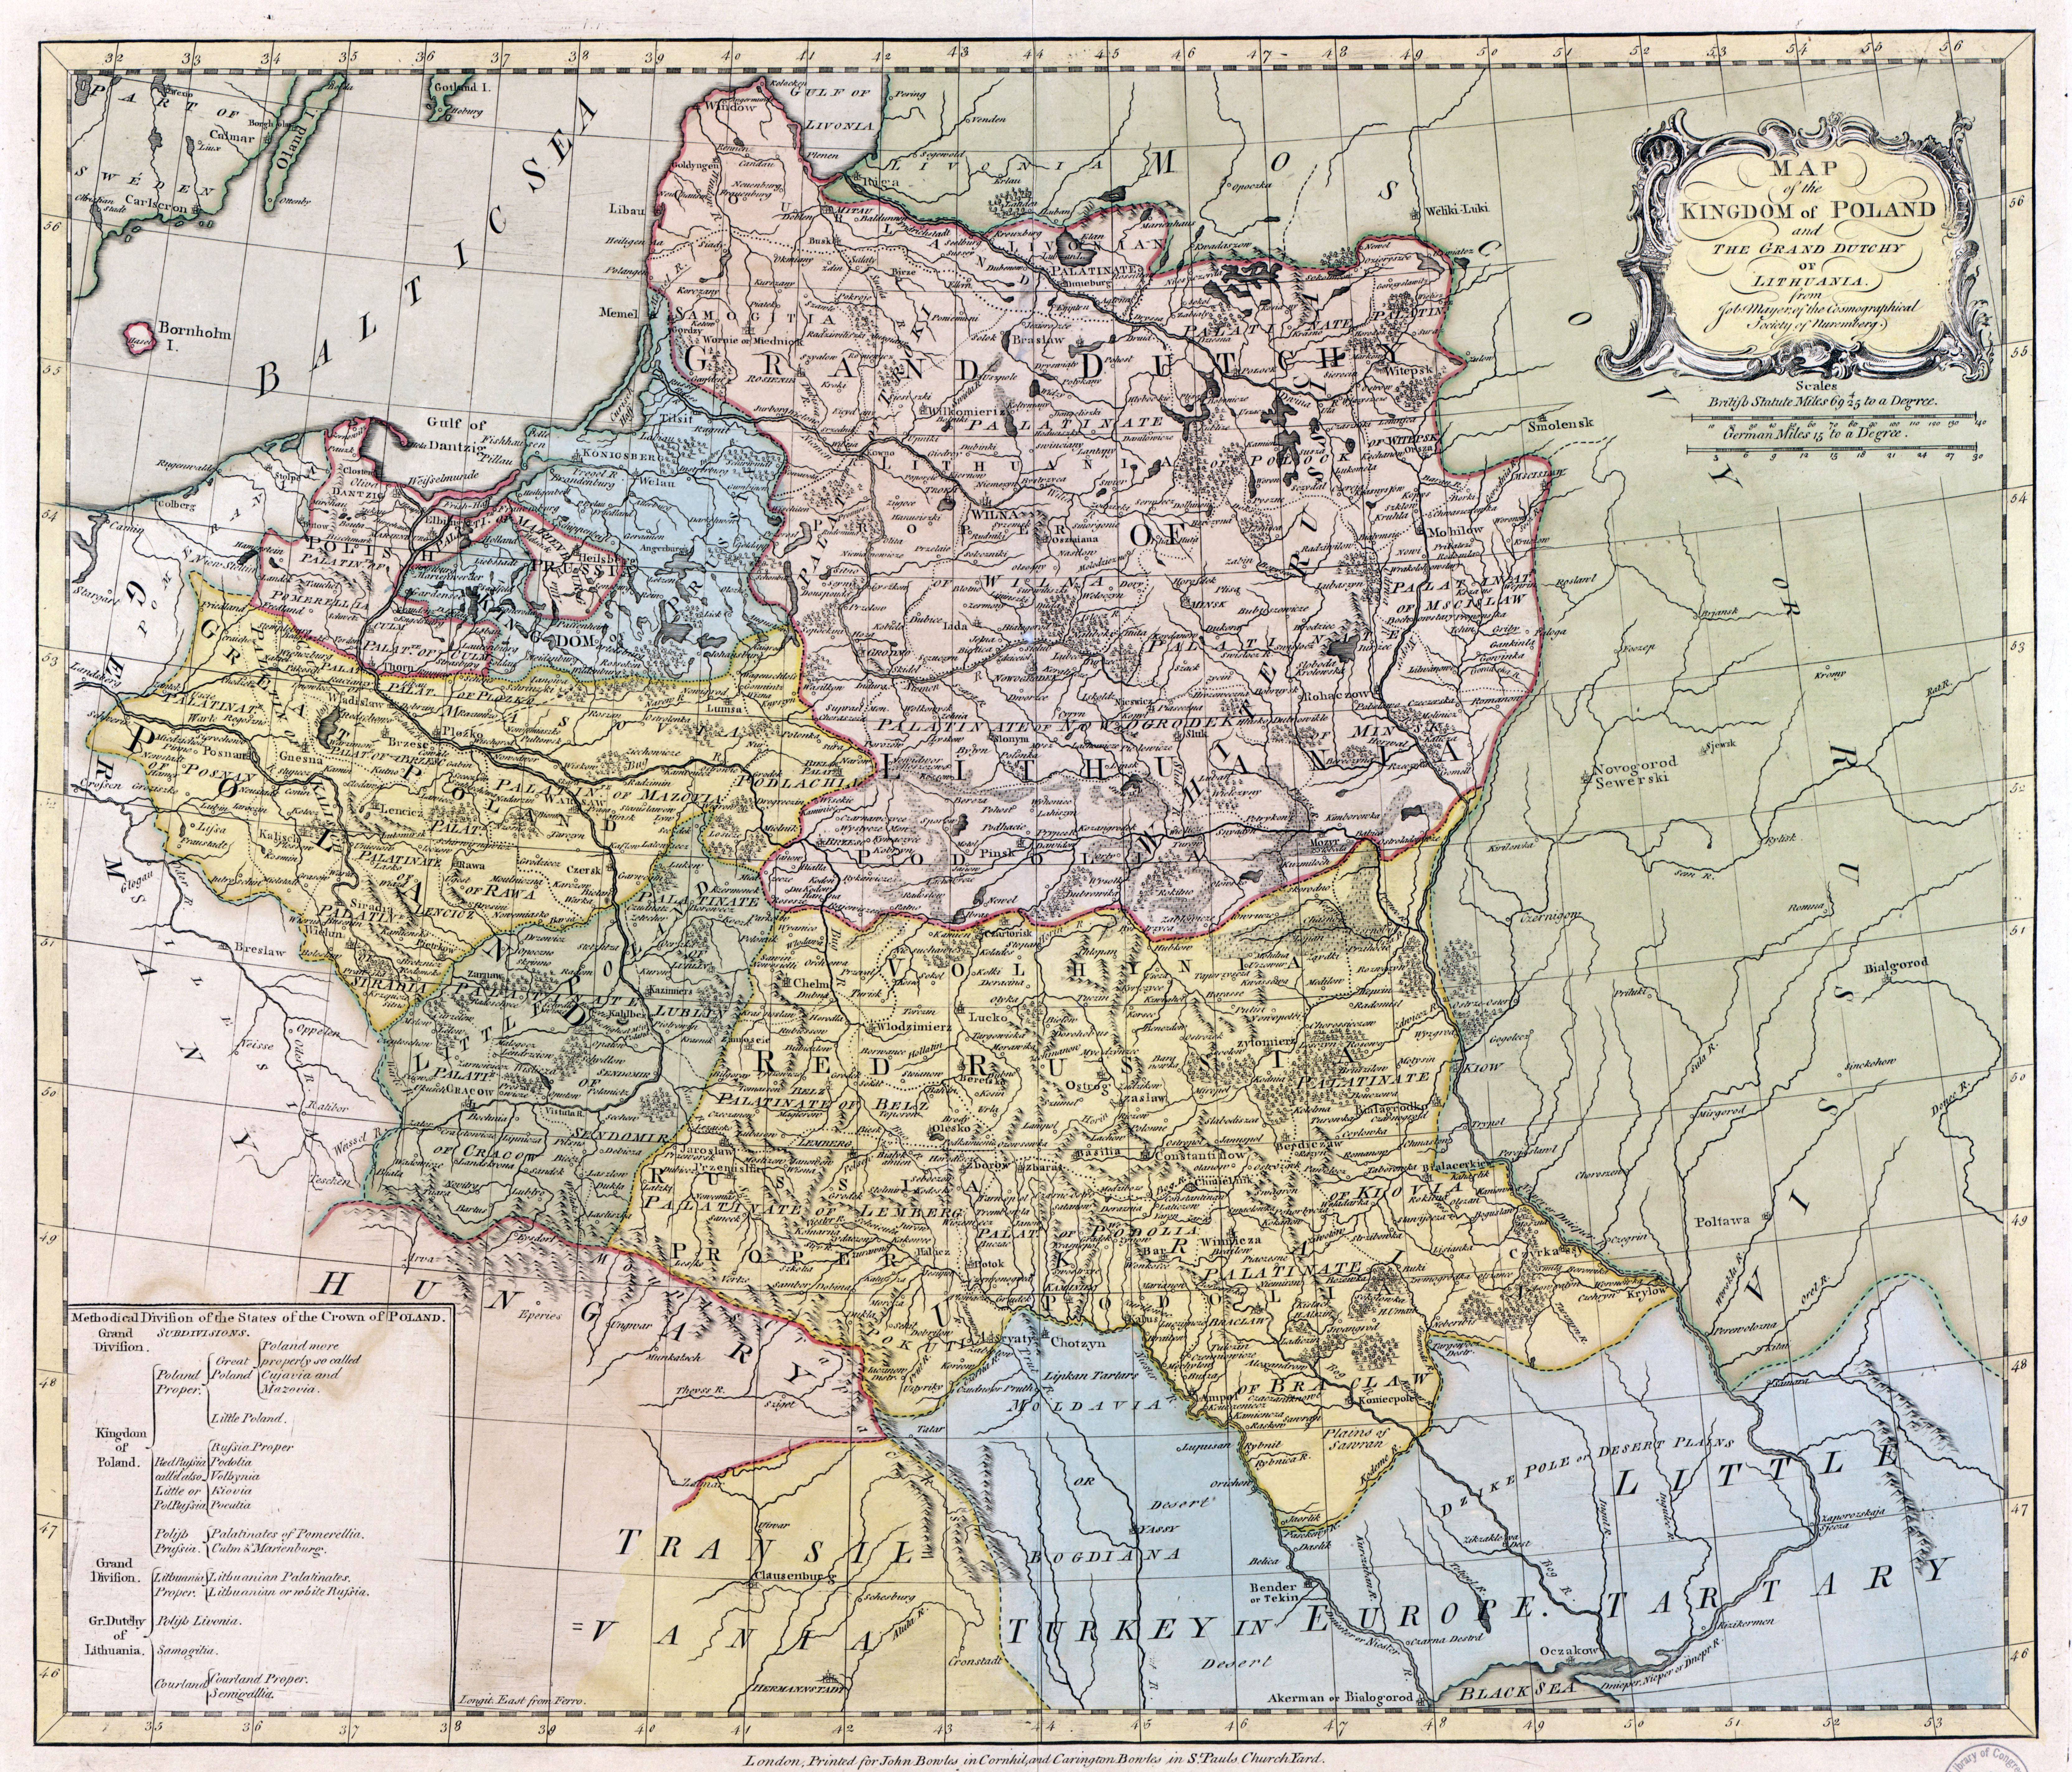 Large scale map of the Kingdom of Poland and the Grand Dutchy of